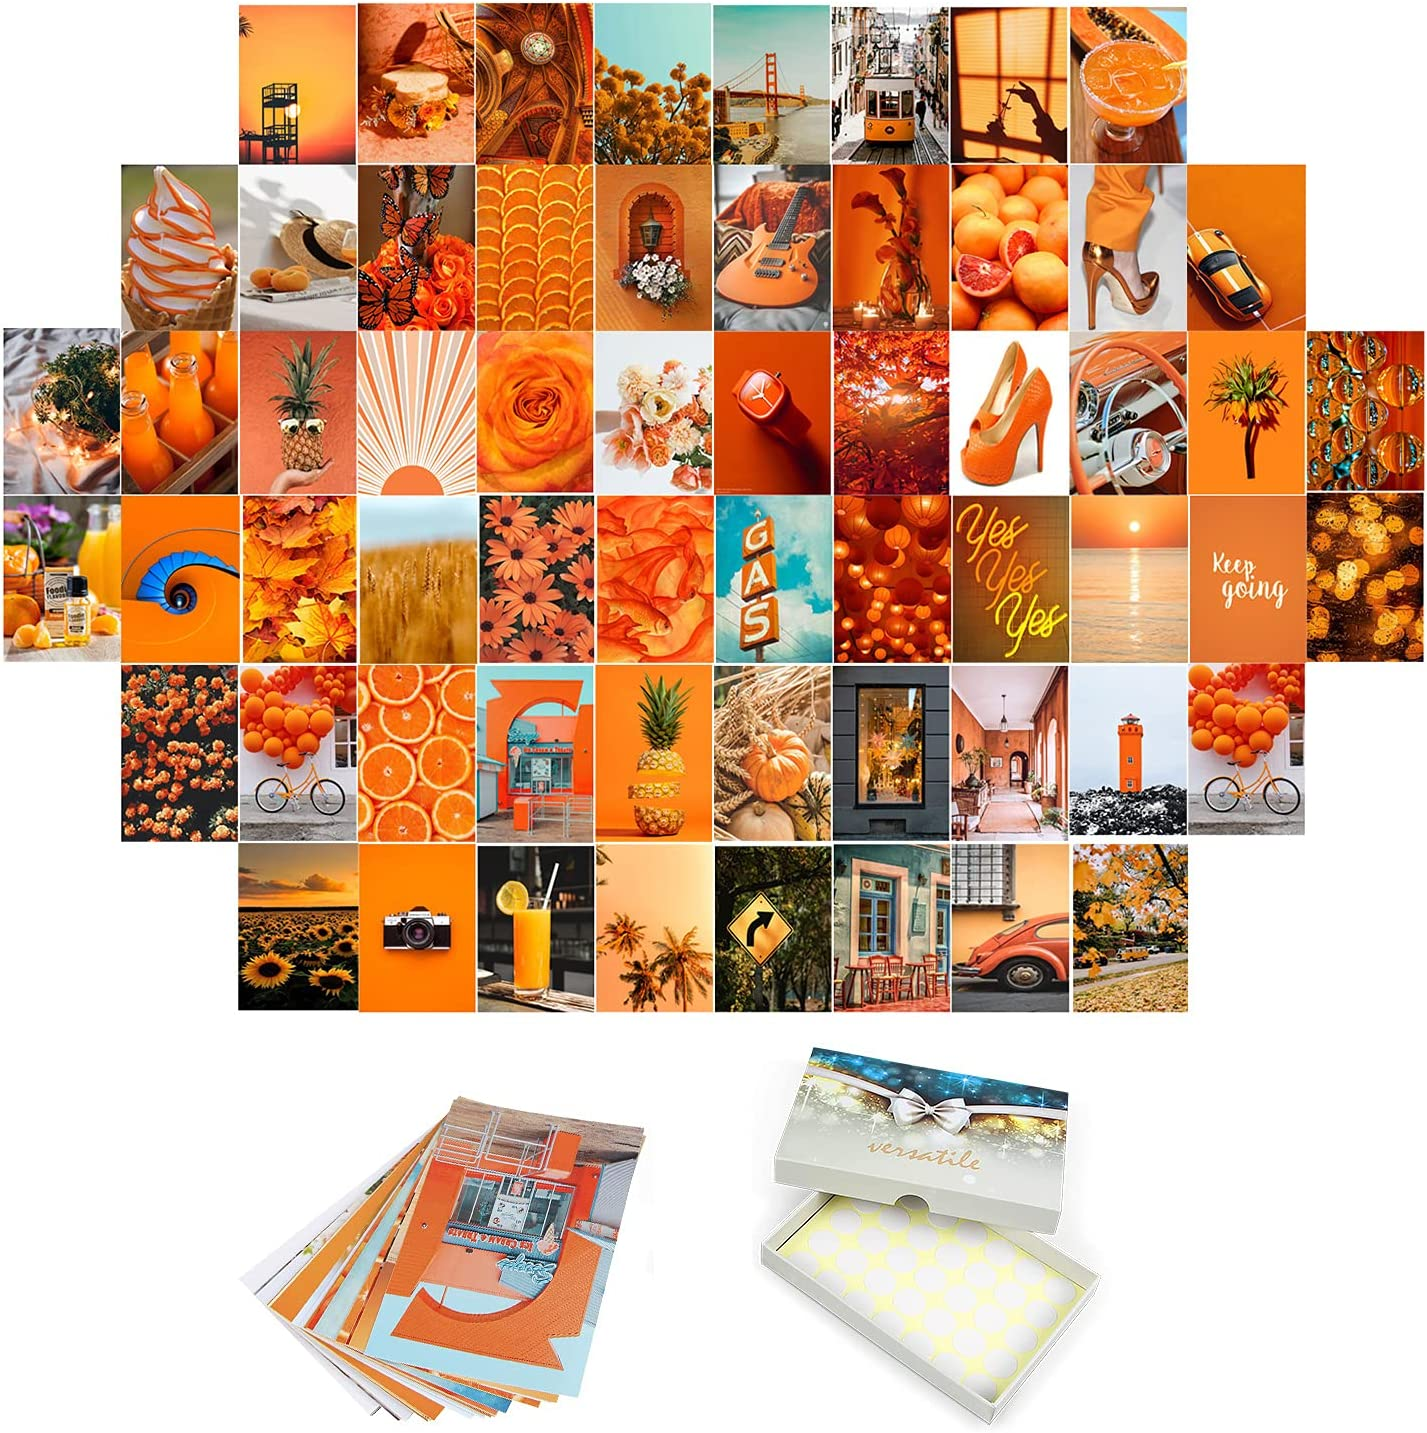 Orange Wall Collage Kit Wall Decor for Room Aesthetic, 60 Set Room Decor Aesthetic Pictures for Teen Girls, VSCO Bedroom Decor, Aesthetic Posters with stickers (60 Set 4x6 Inch, Orange)